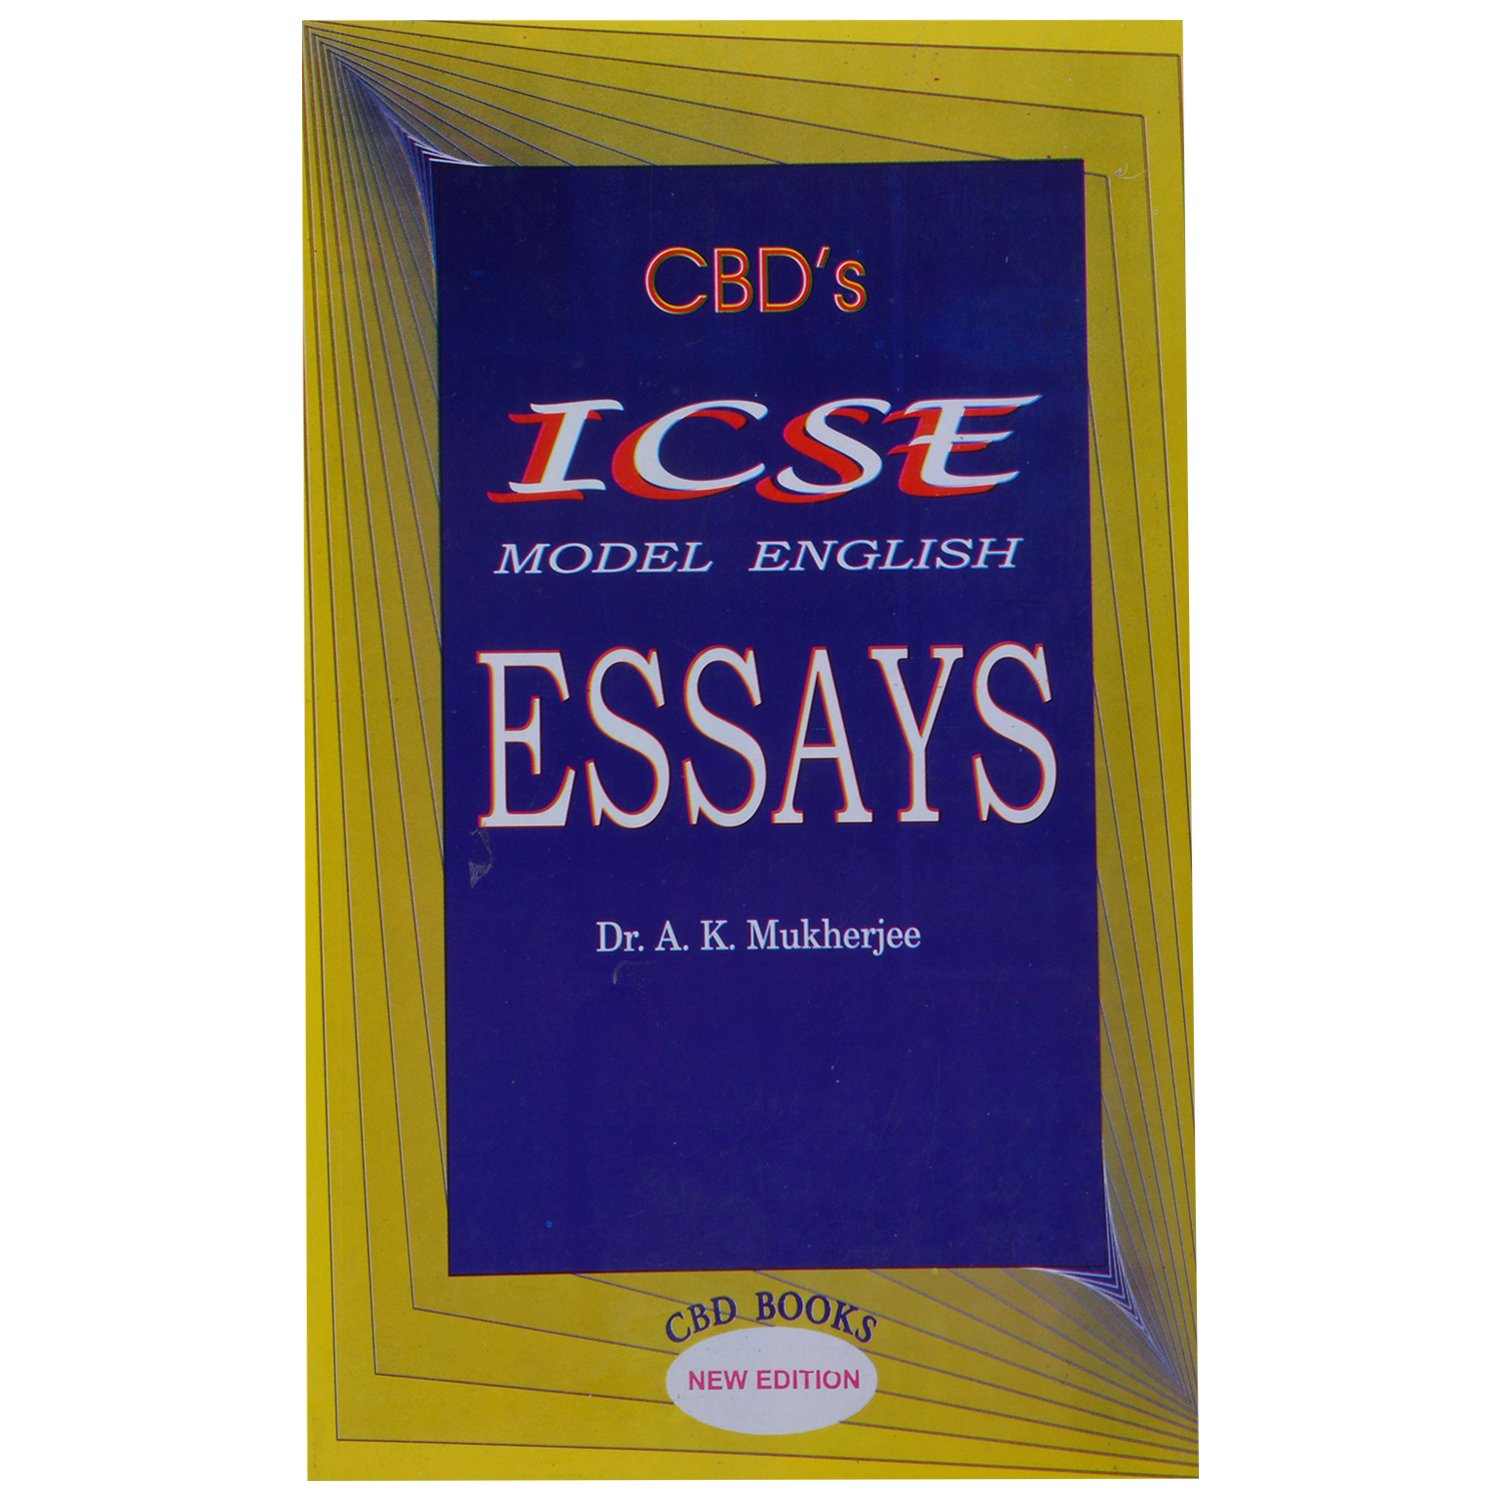 Buy Icse Model English Essays Cbd Book Online At Low Prices In  Buy Icse Model English Essays Cbd Book Online At Low Prices In India   Icse Model English Essays Cbd Reviews  Ratings  Amazonin